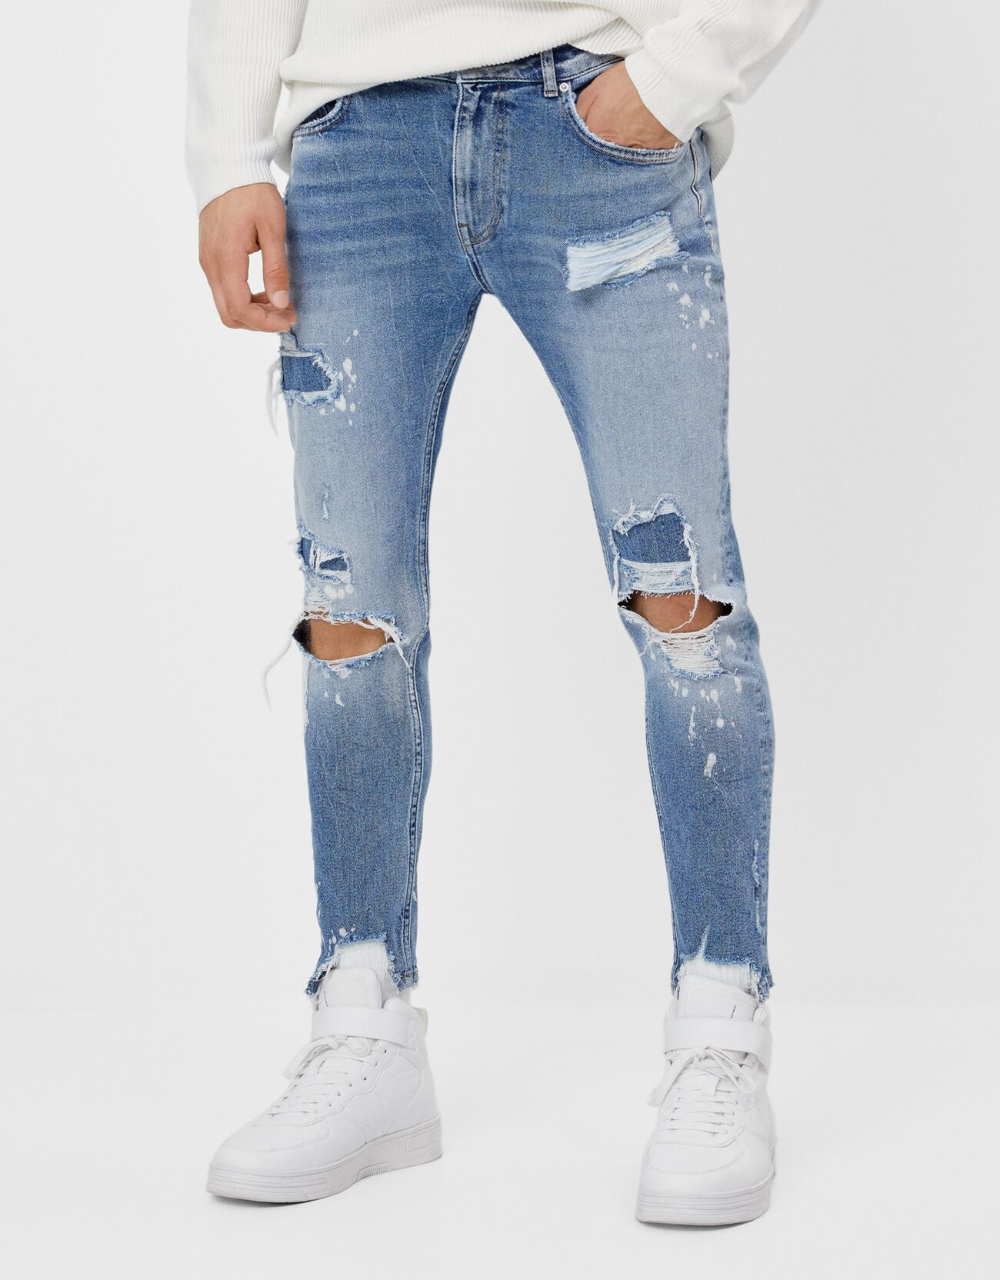 Ripped Skinny Jeans Available In Blue Ripped Skinny Jeans Ripped Jeans Men Mens Jeans